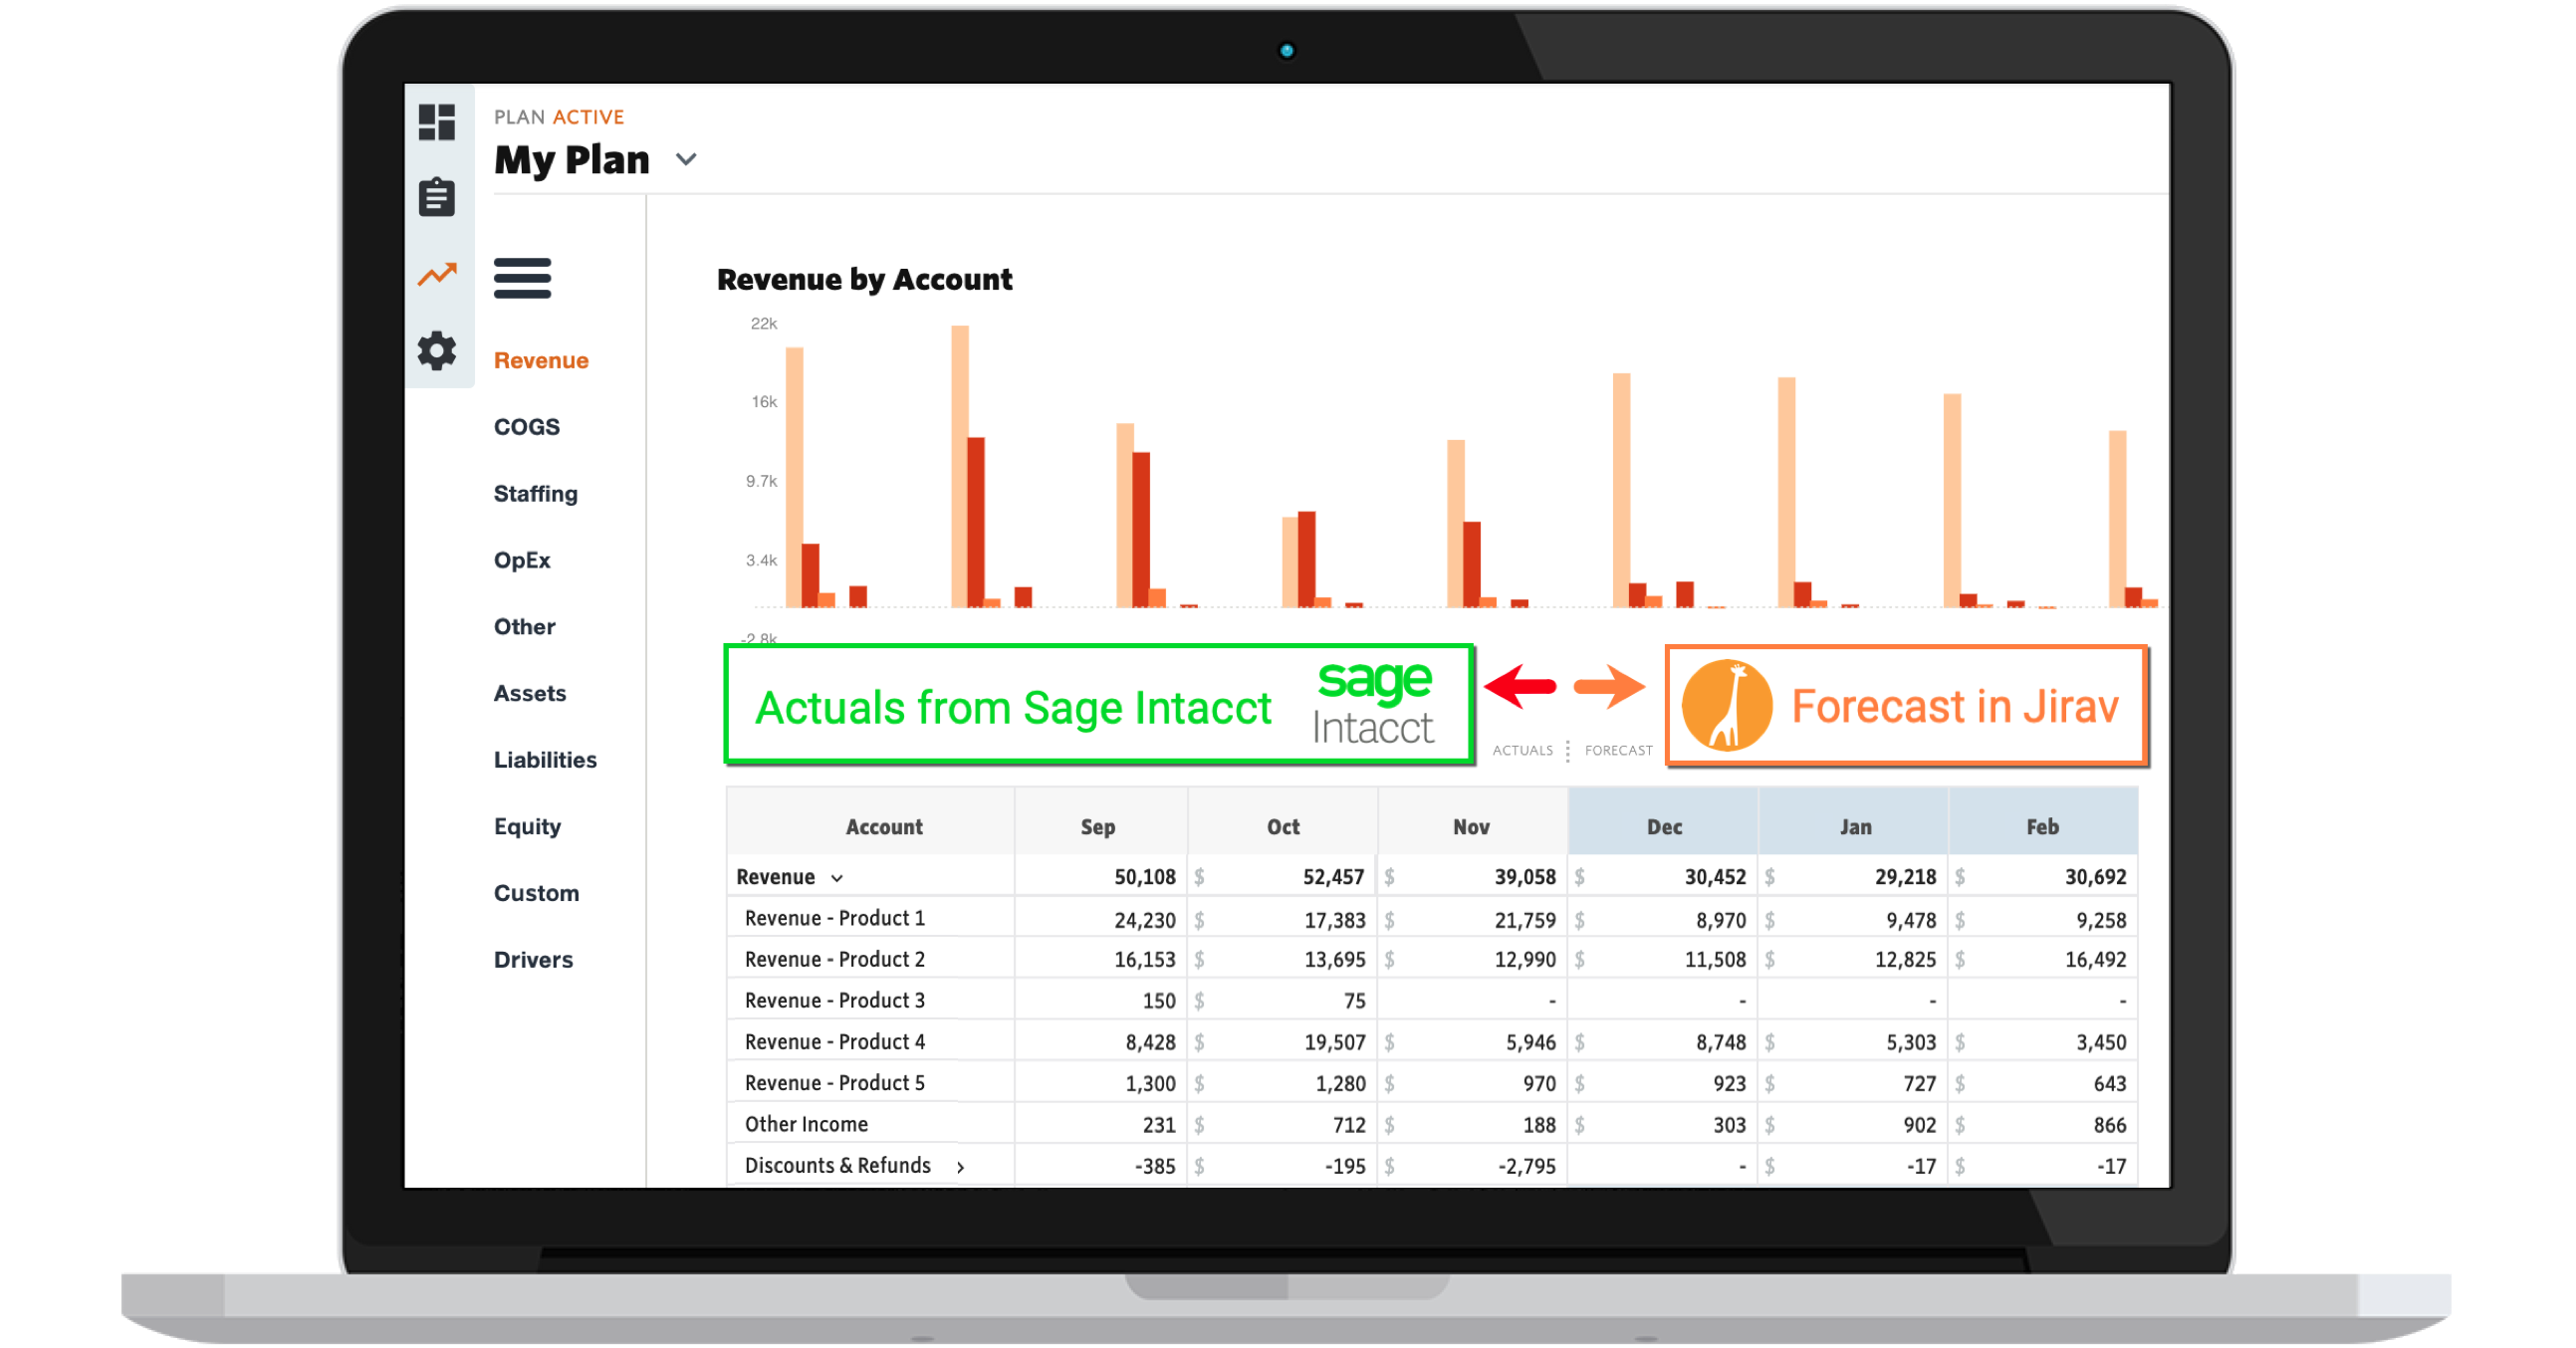 Building a revenue plan with actuals from Sage Intacct and your forecast in Jirav